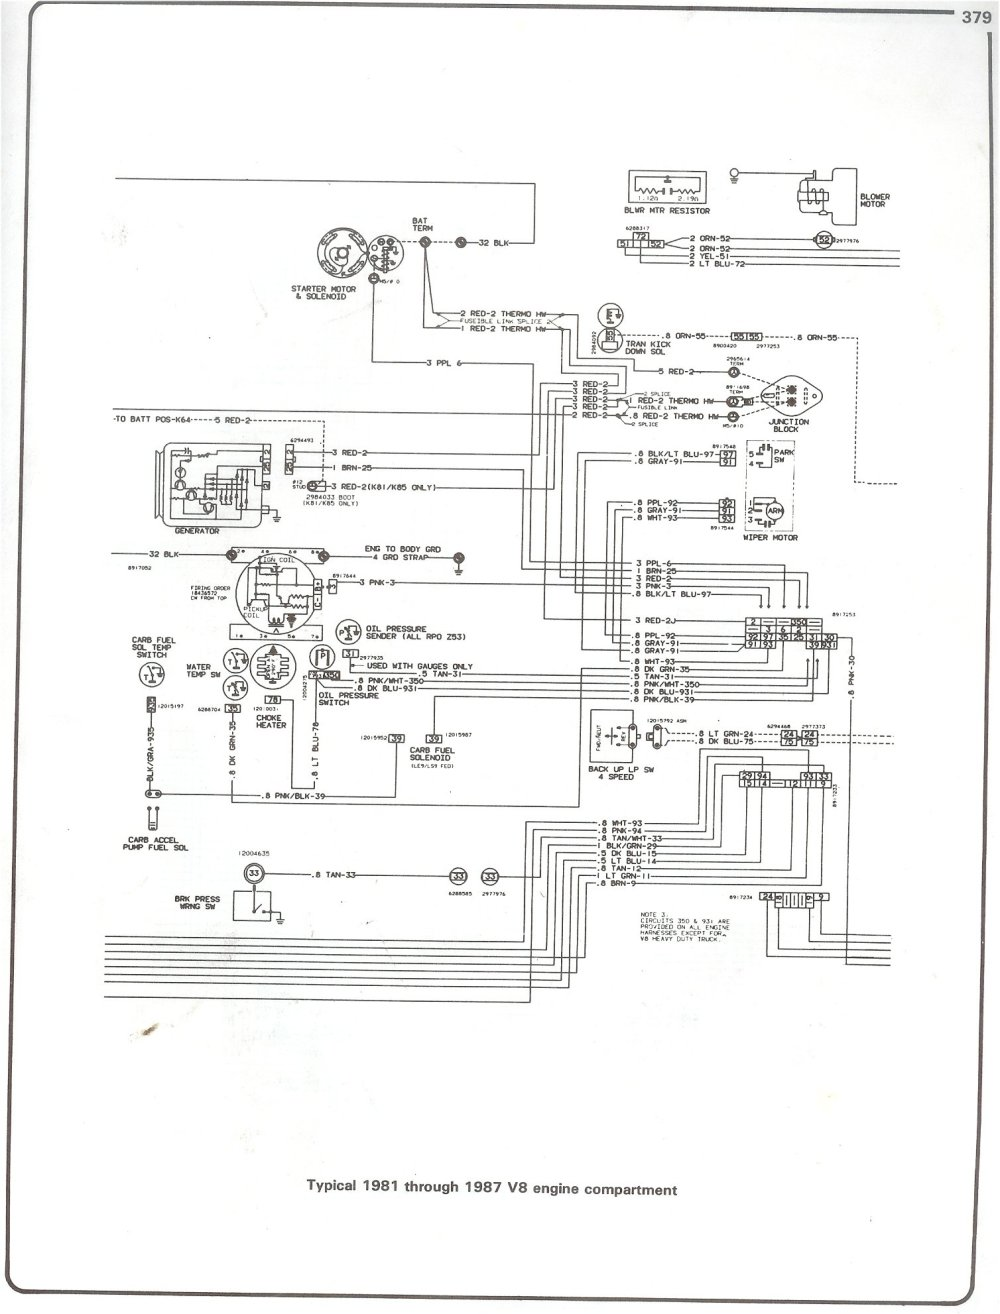 medium resolution of complete 73 87 wiring diagrams 2008 gmc sierra wiring diagram 1987 gmc sierra wiring diagram